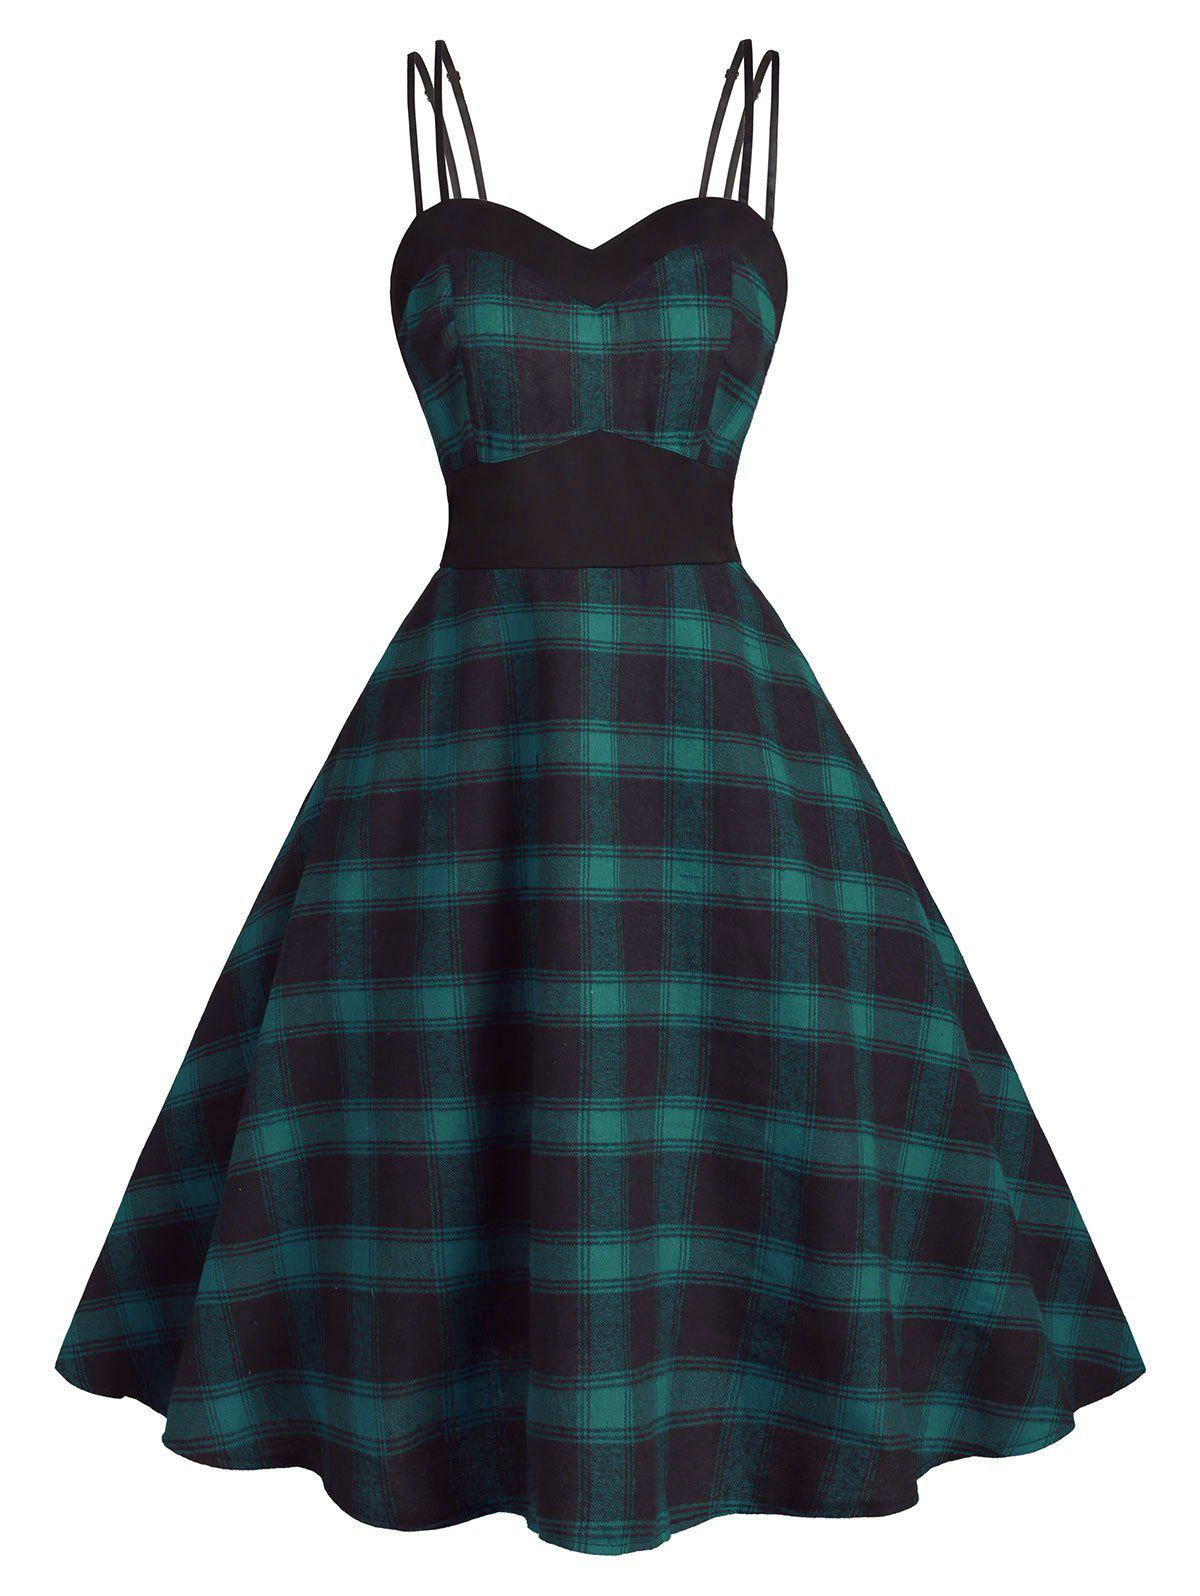 Fashion Back Zipper Strappy Plaid Plus Size Dress